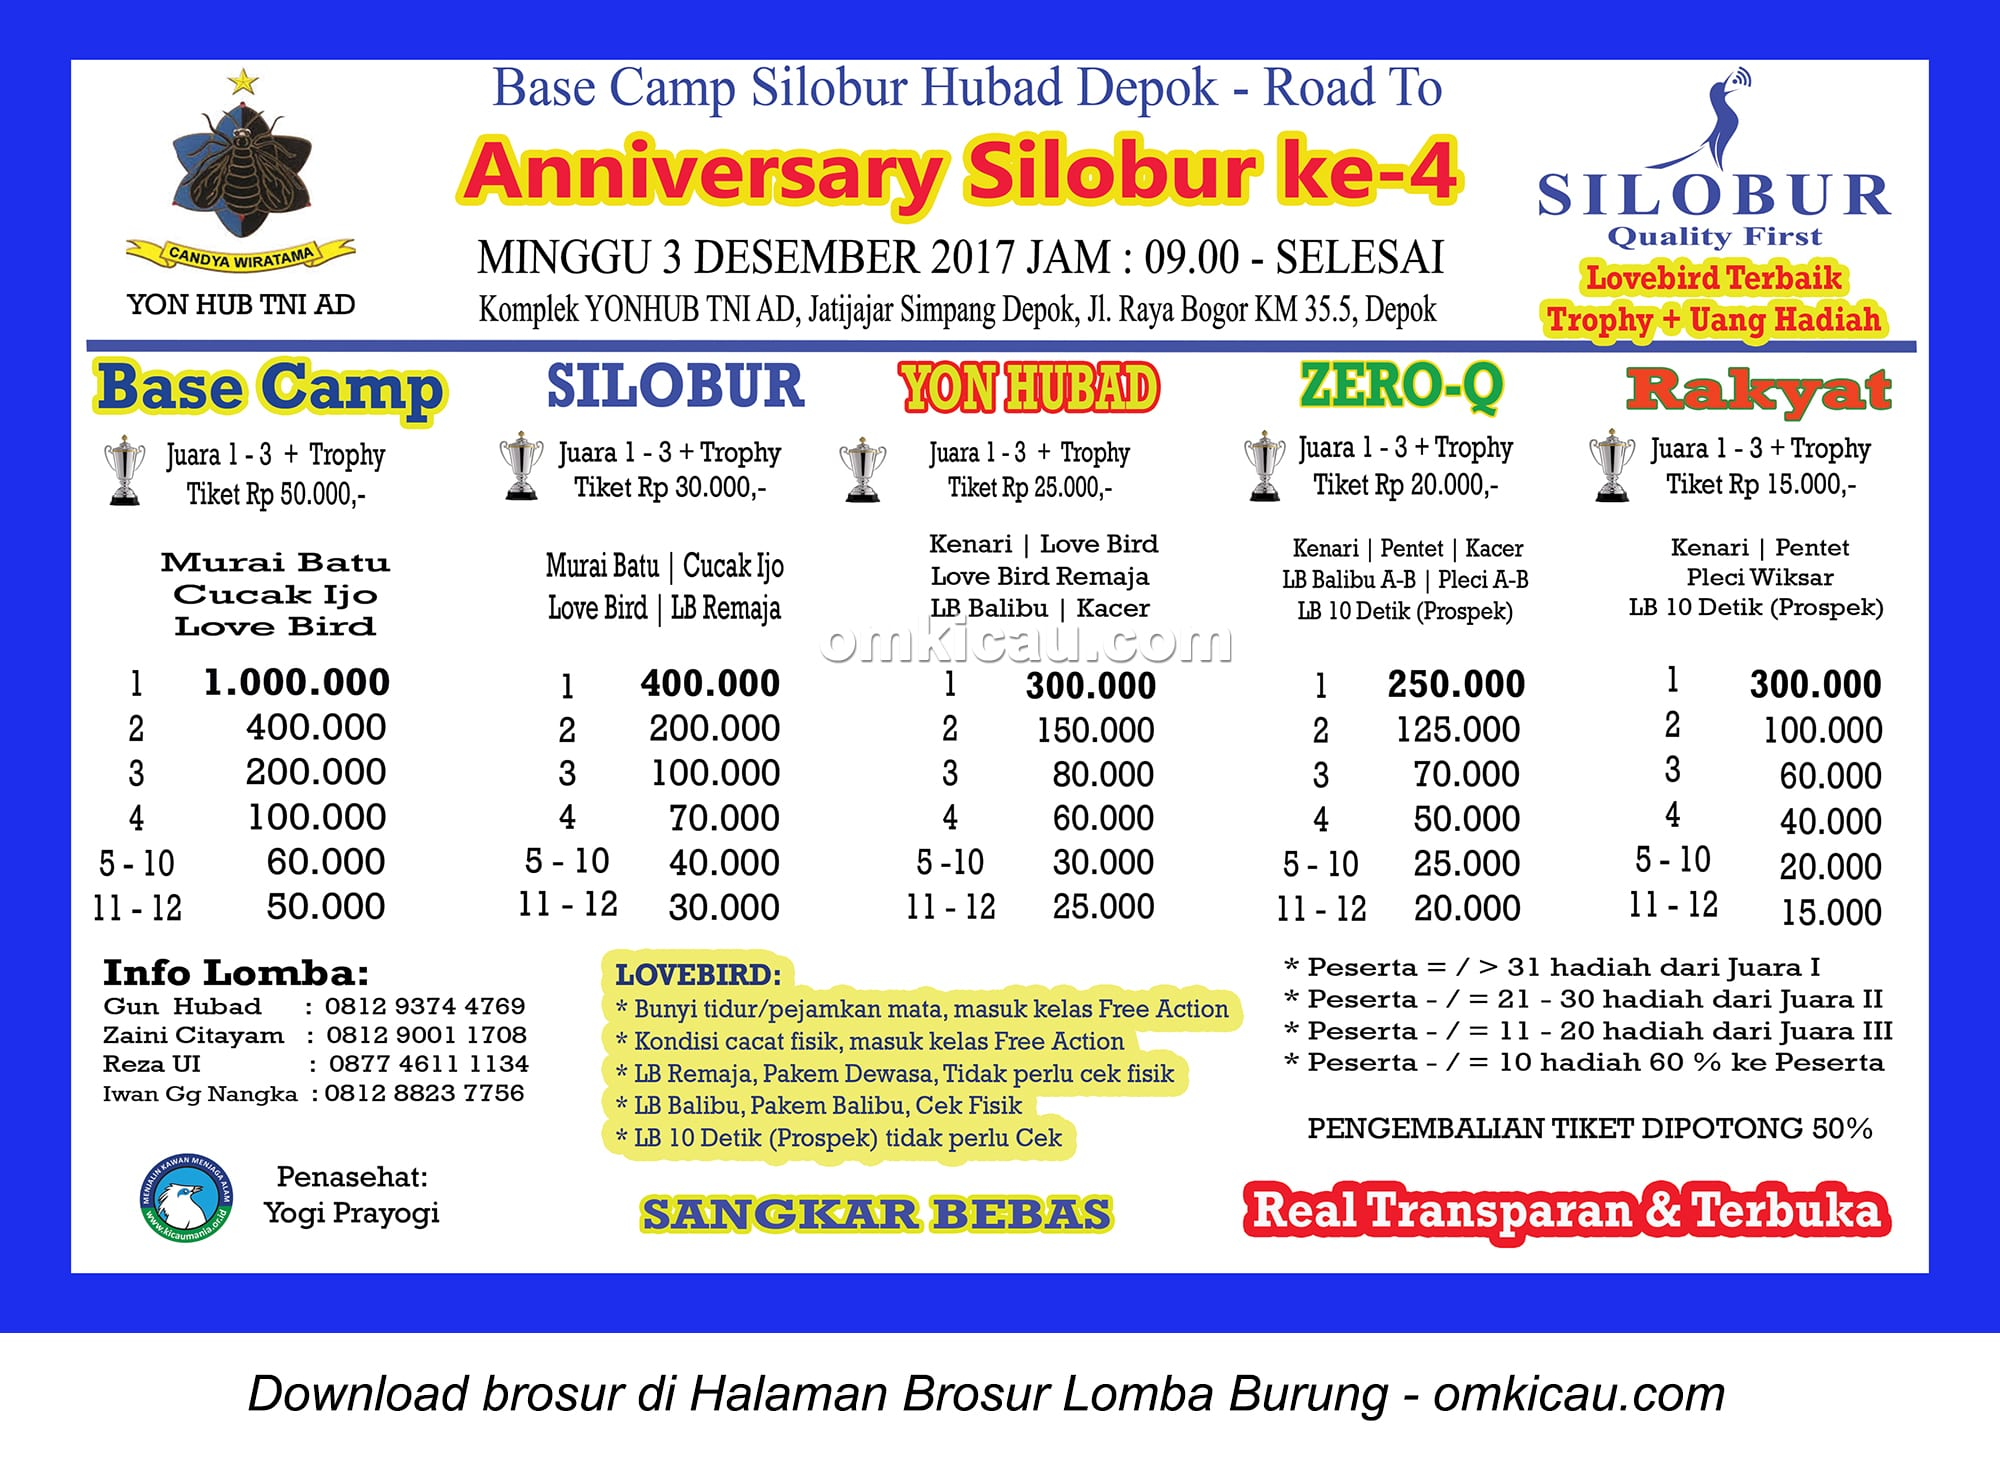 Road to Anniversary Ke-4 Silobur